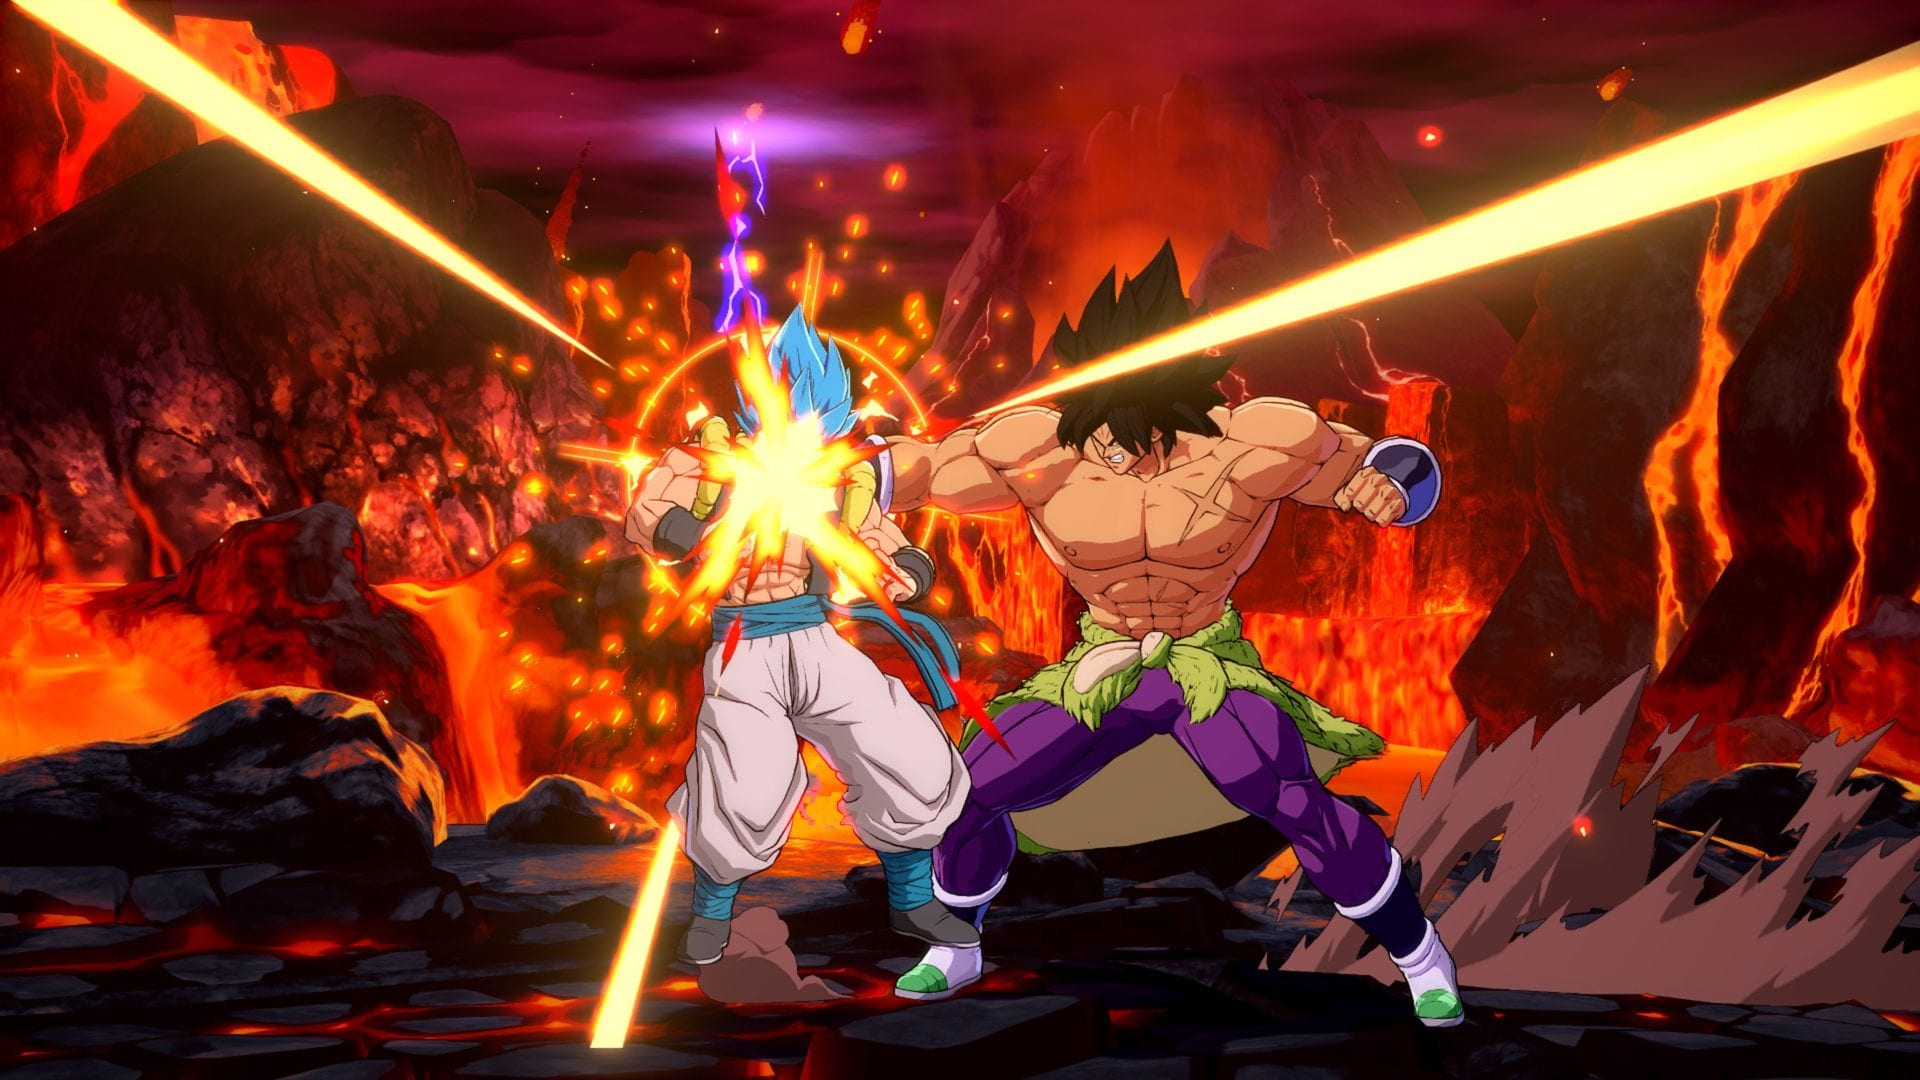 New Dragon Ball Fighterz Screenshots Show Broly While